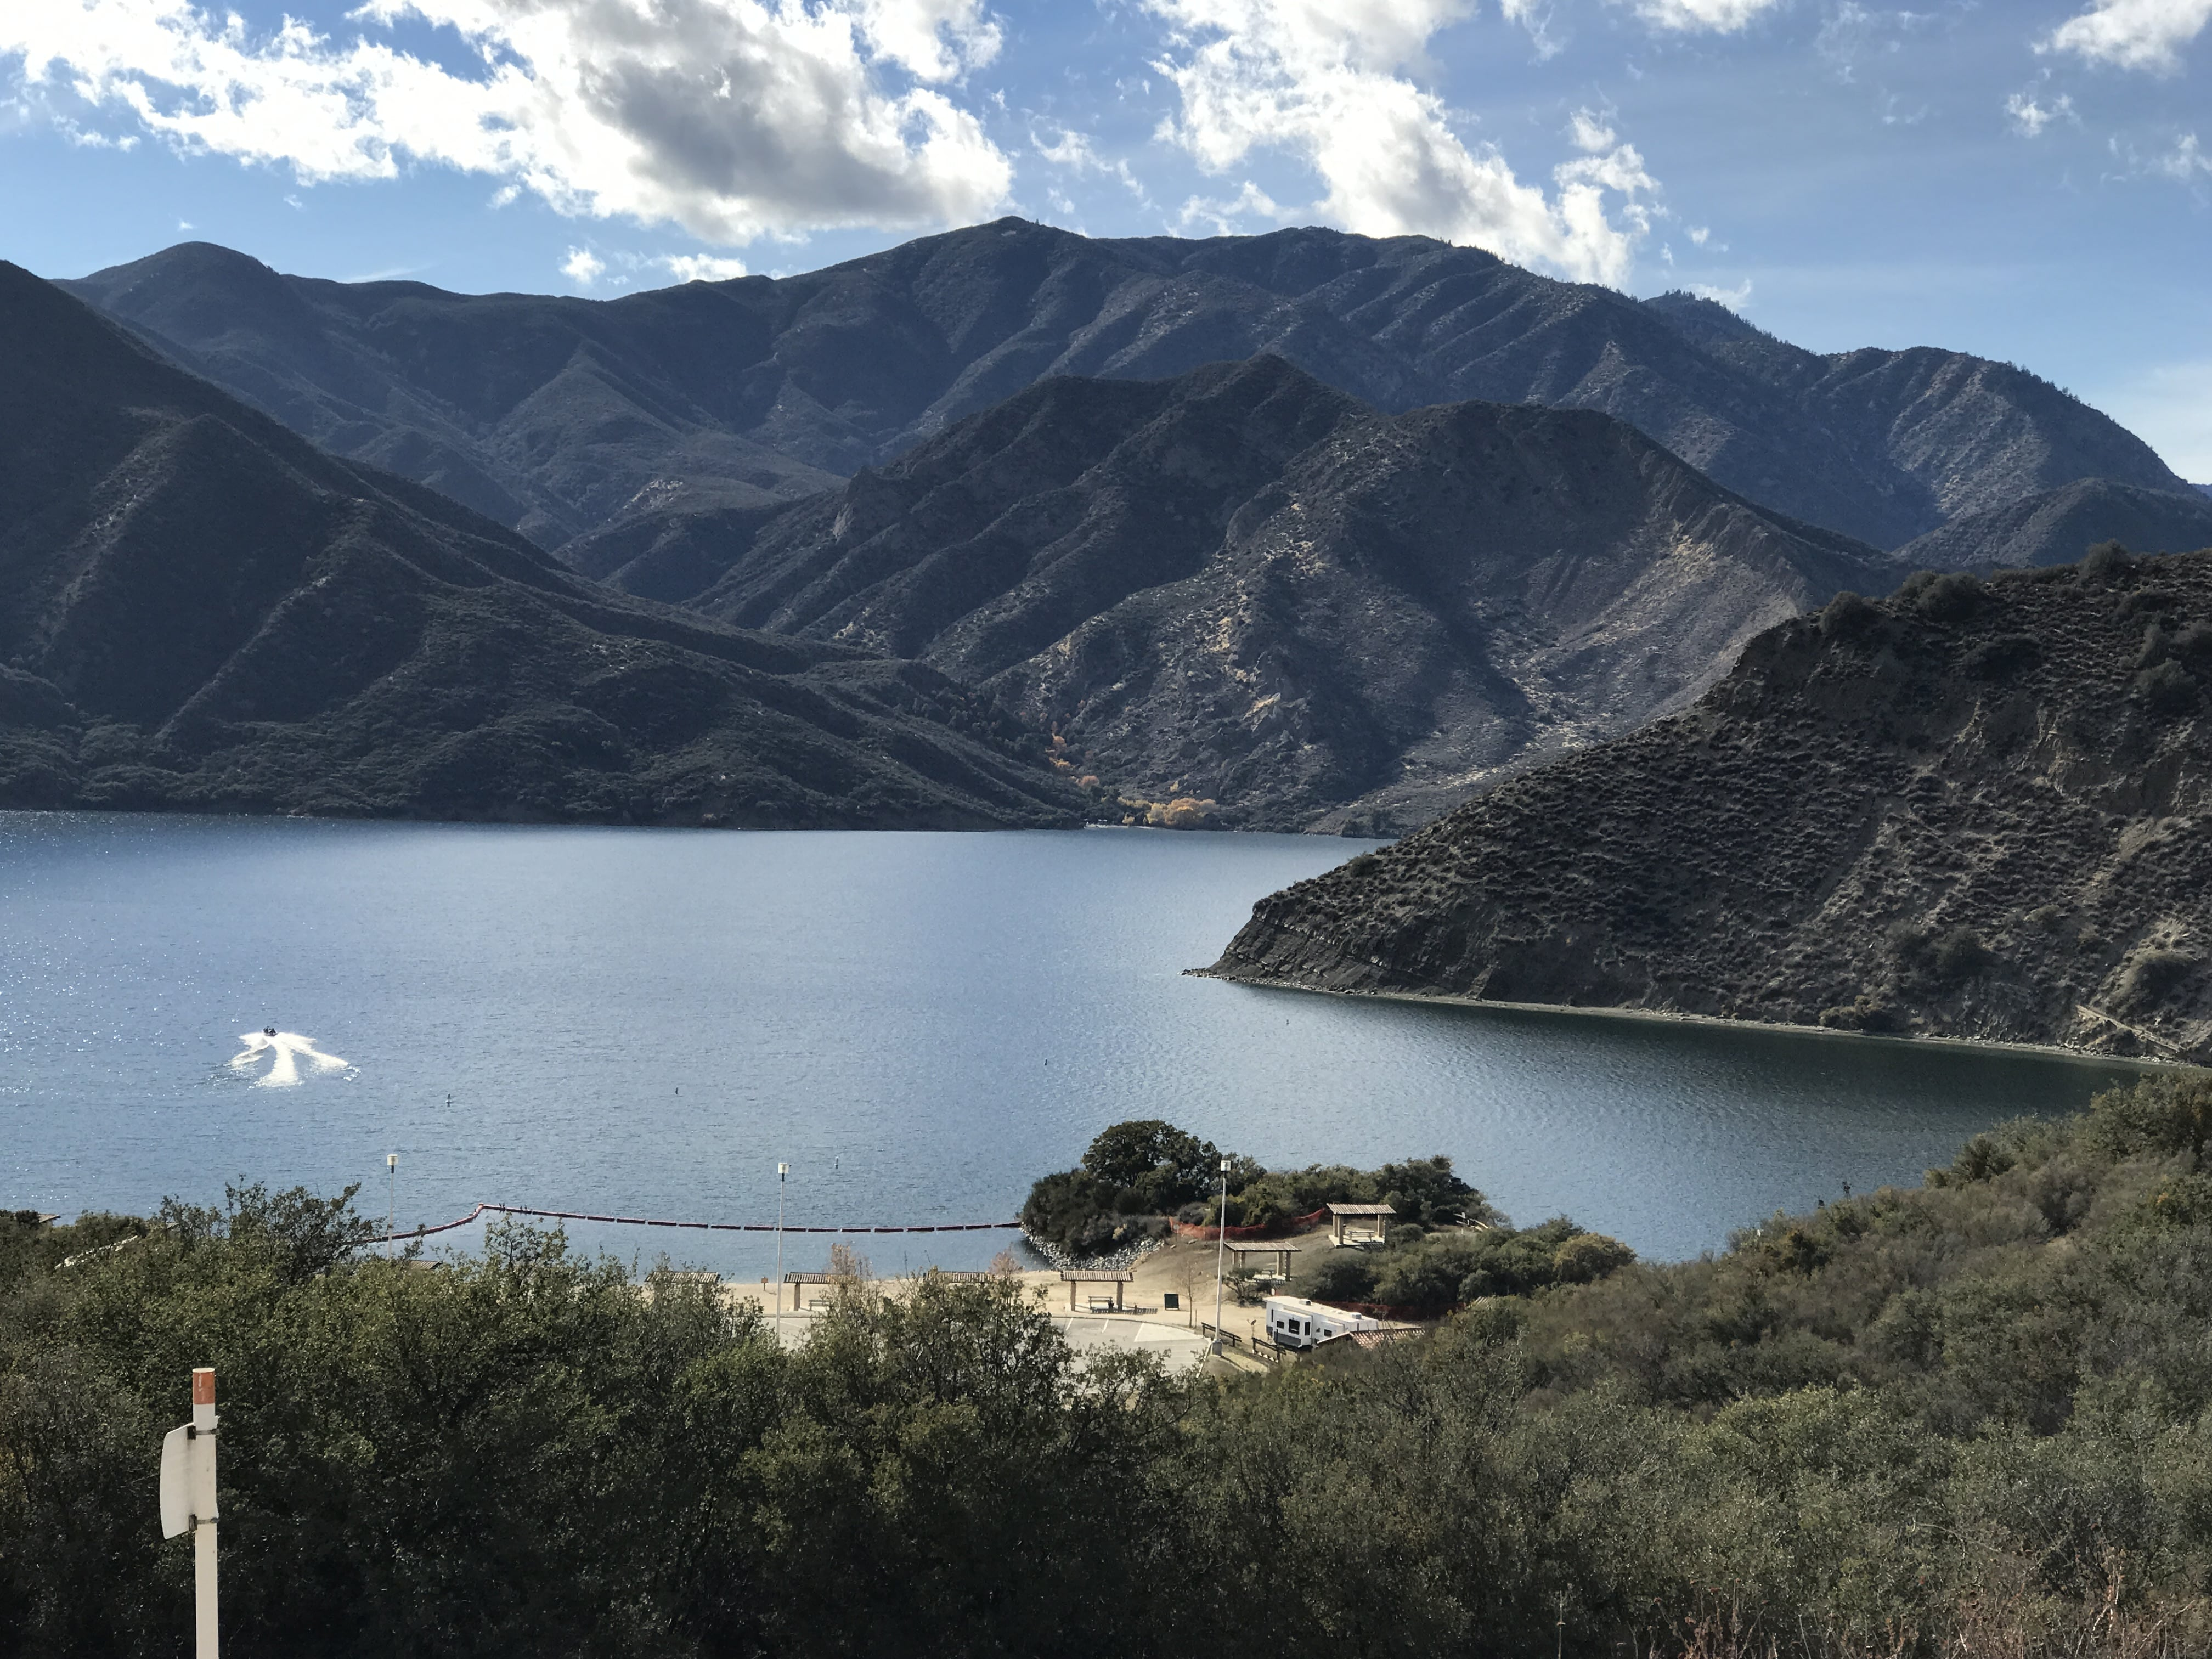 A great place to visit in LA out of the city is Angeles National Forest